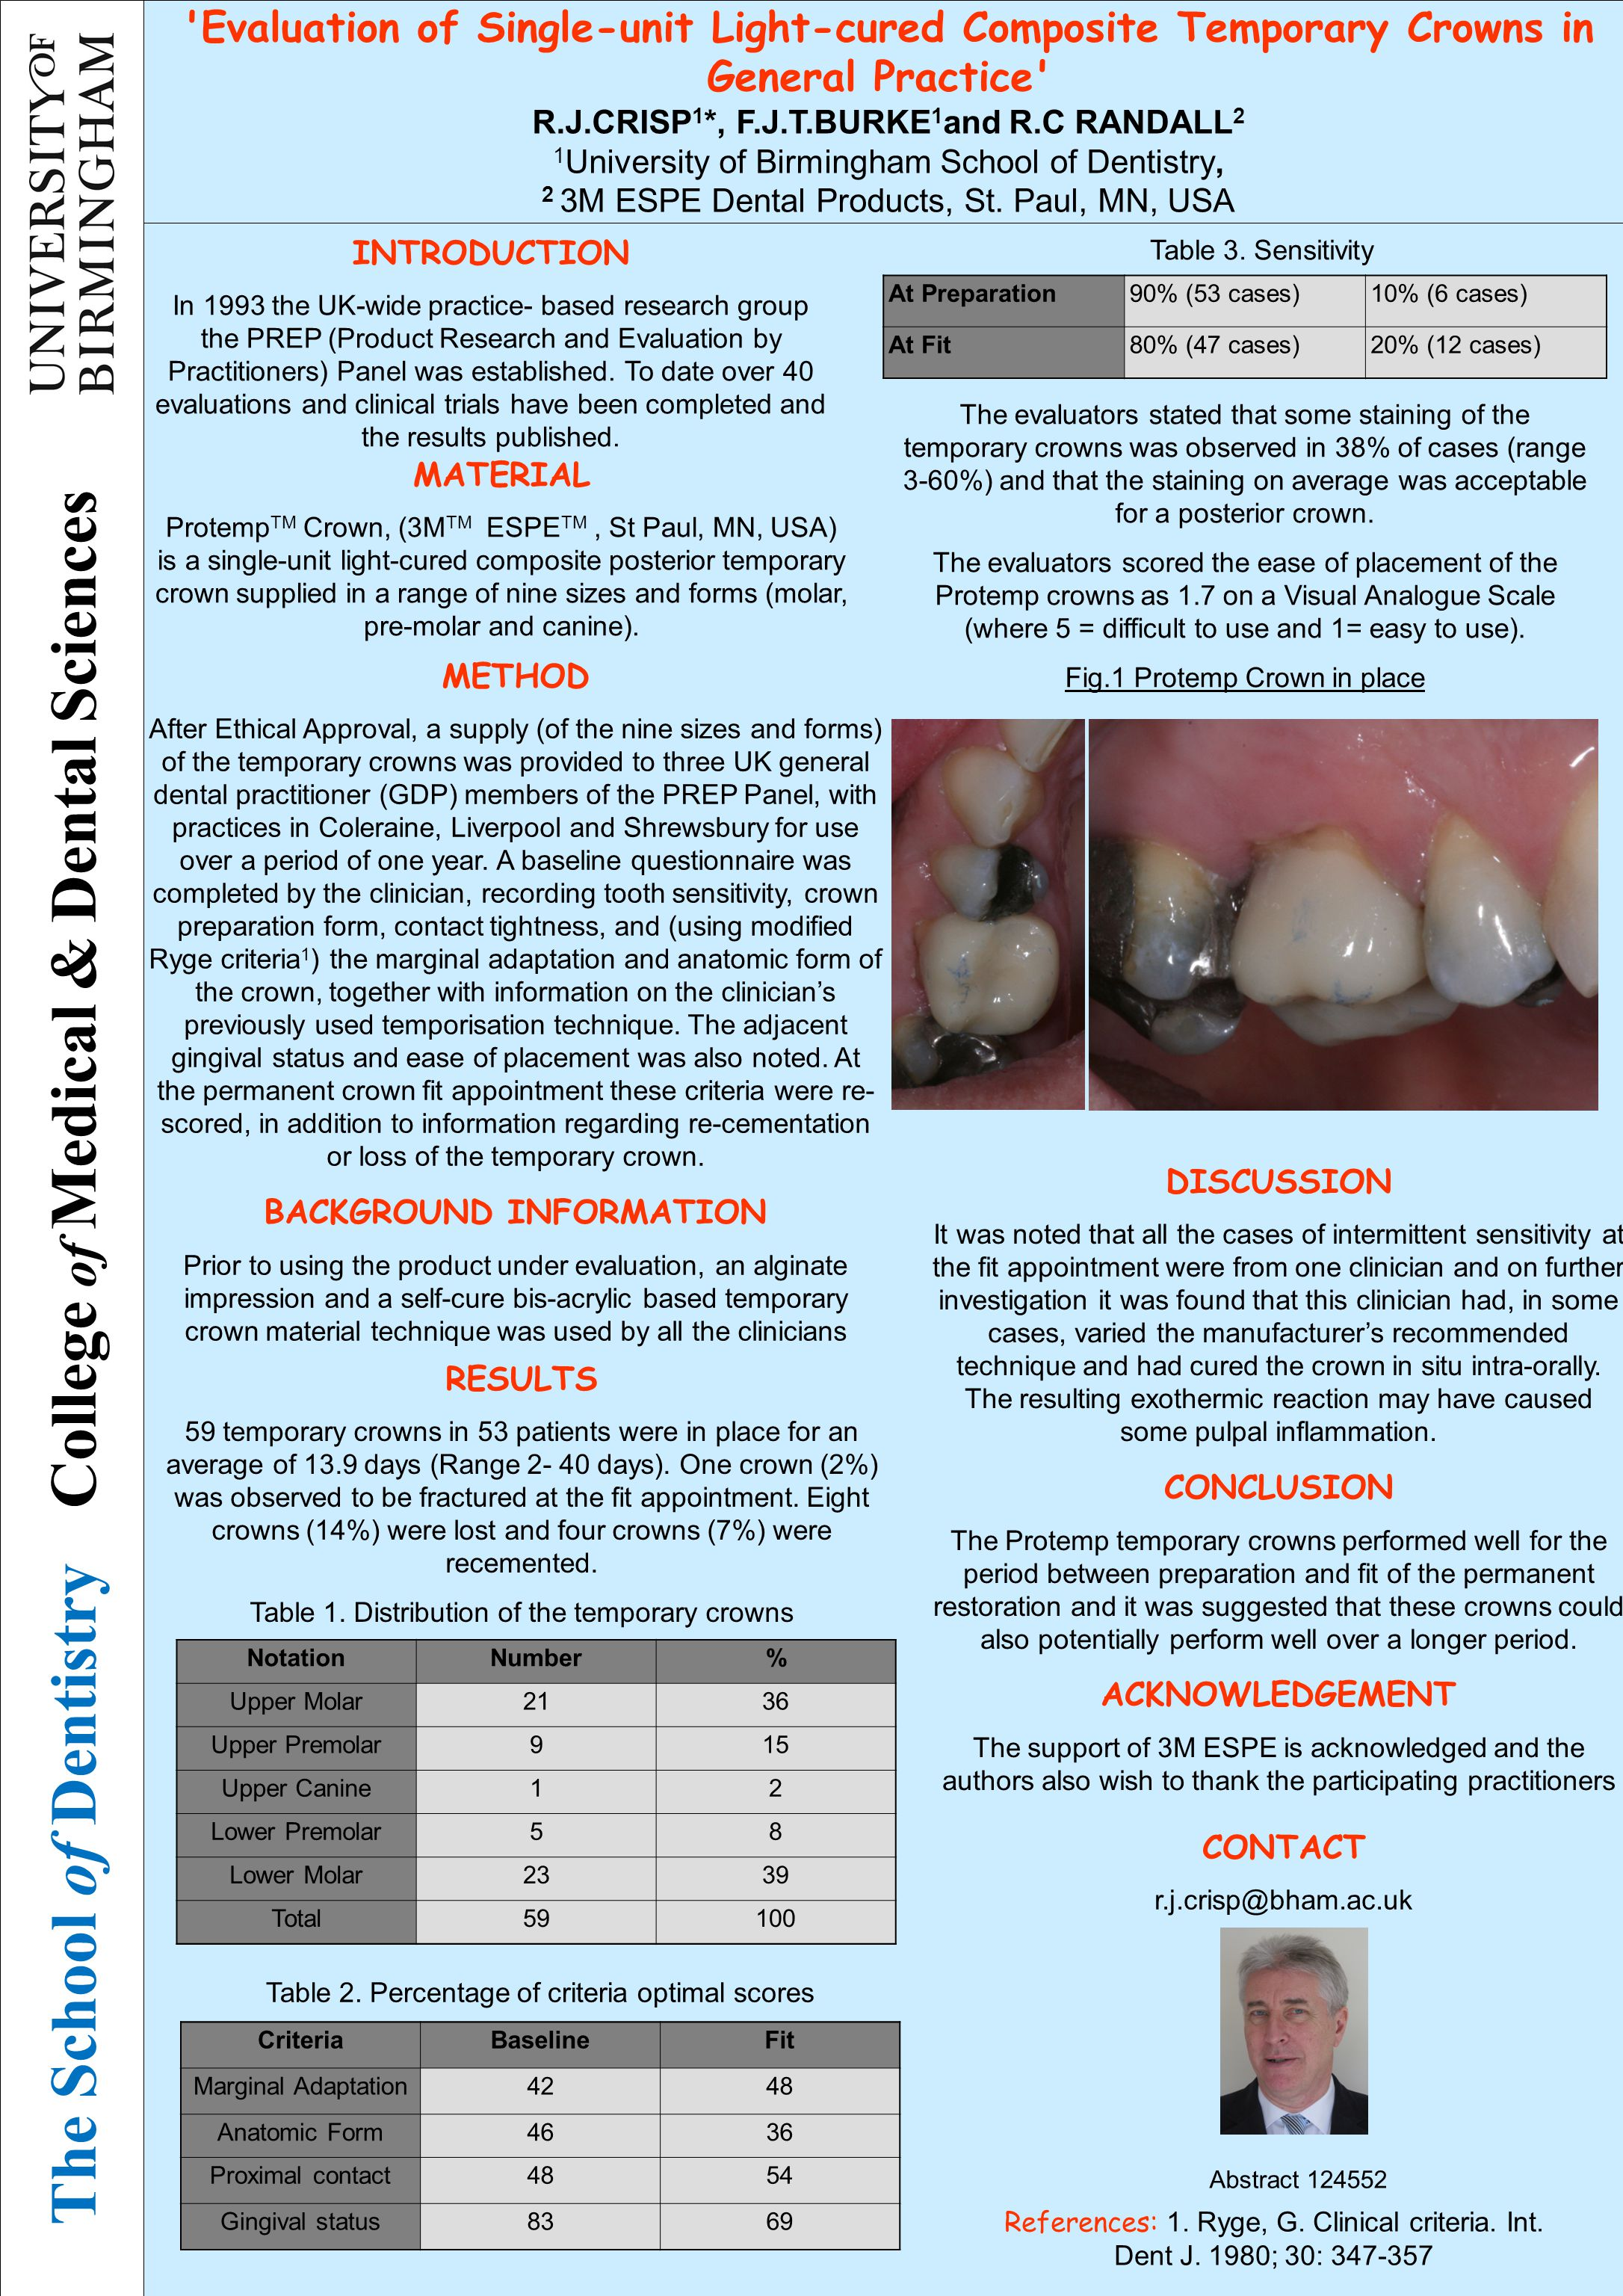 The School of Dentistry College of Medical & Dental Sciences Evaluation of Single-unit Light-cured Composite Temporary Crowns in General Practice R.J.CRISP 1 *, F.J.T.BURKE 1 and R.C RANDALL 2 1 University of Birmingham School of Dentistry, 2 3M ESPE Dental Products, St.